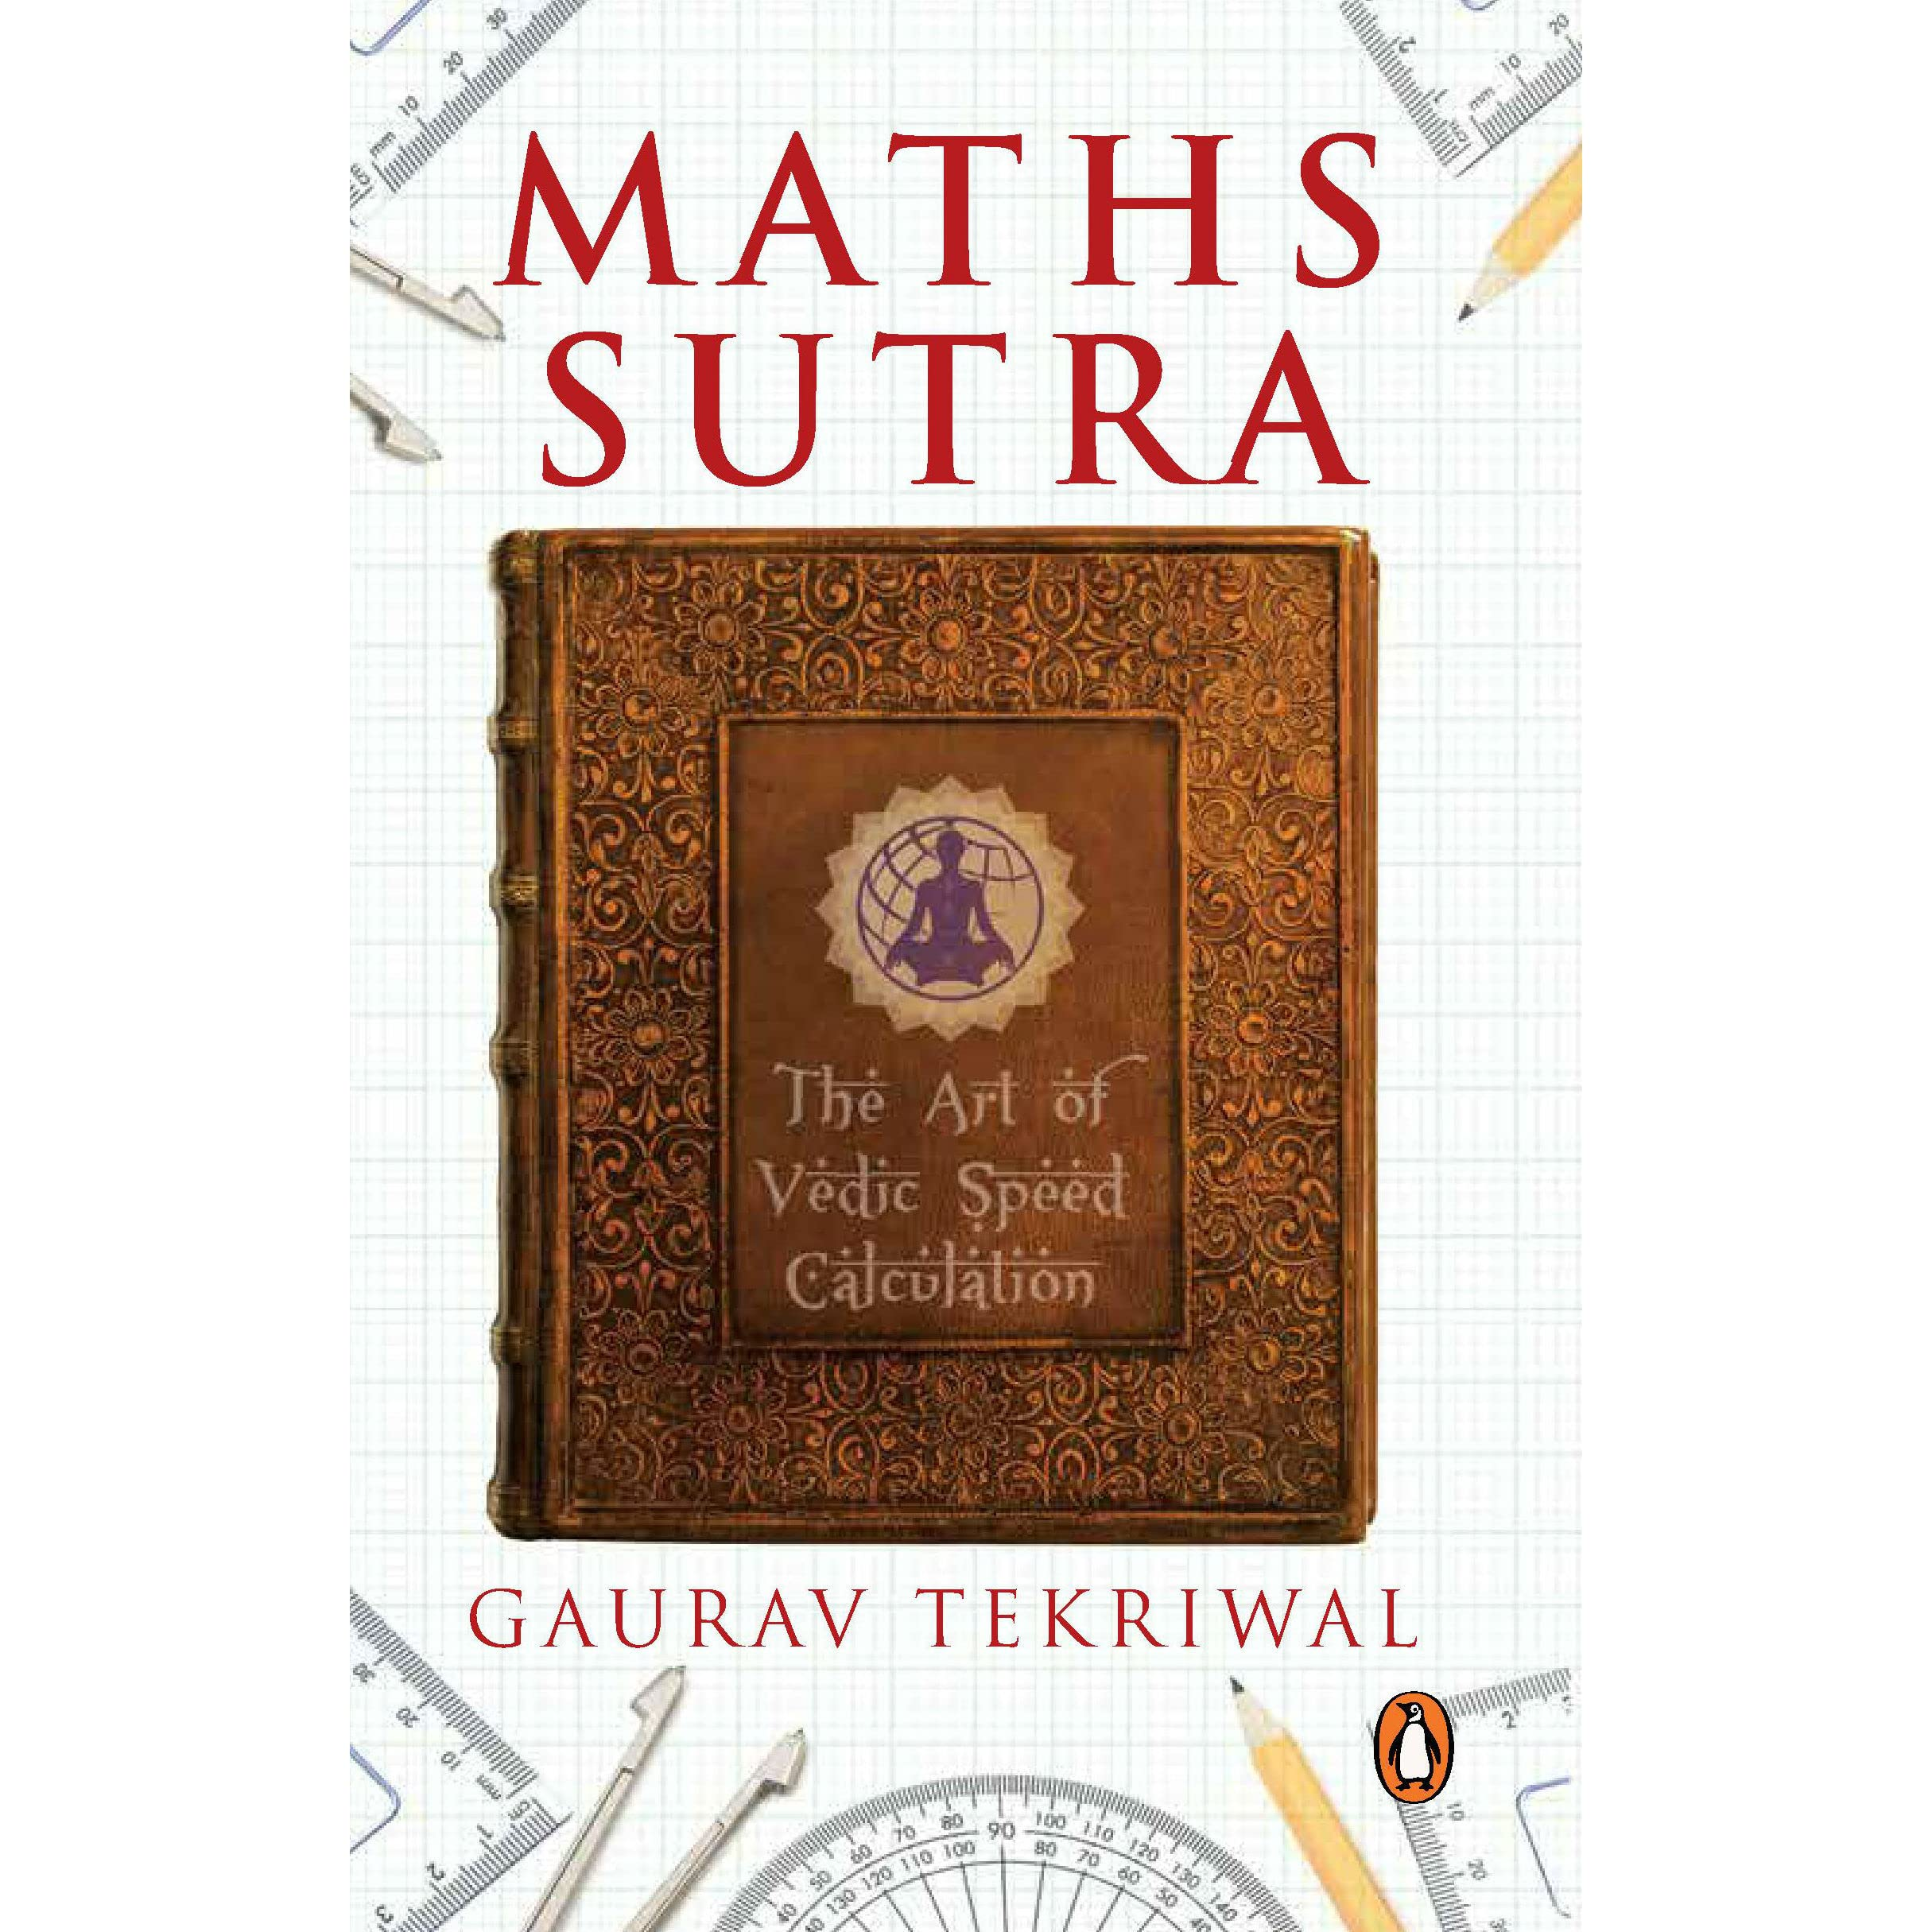 Maths Sutra - The Art of Vedic Speed Calculation by Gaurav Tekriwal